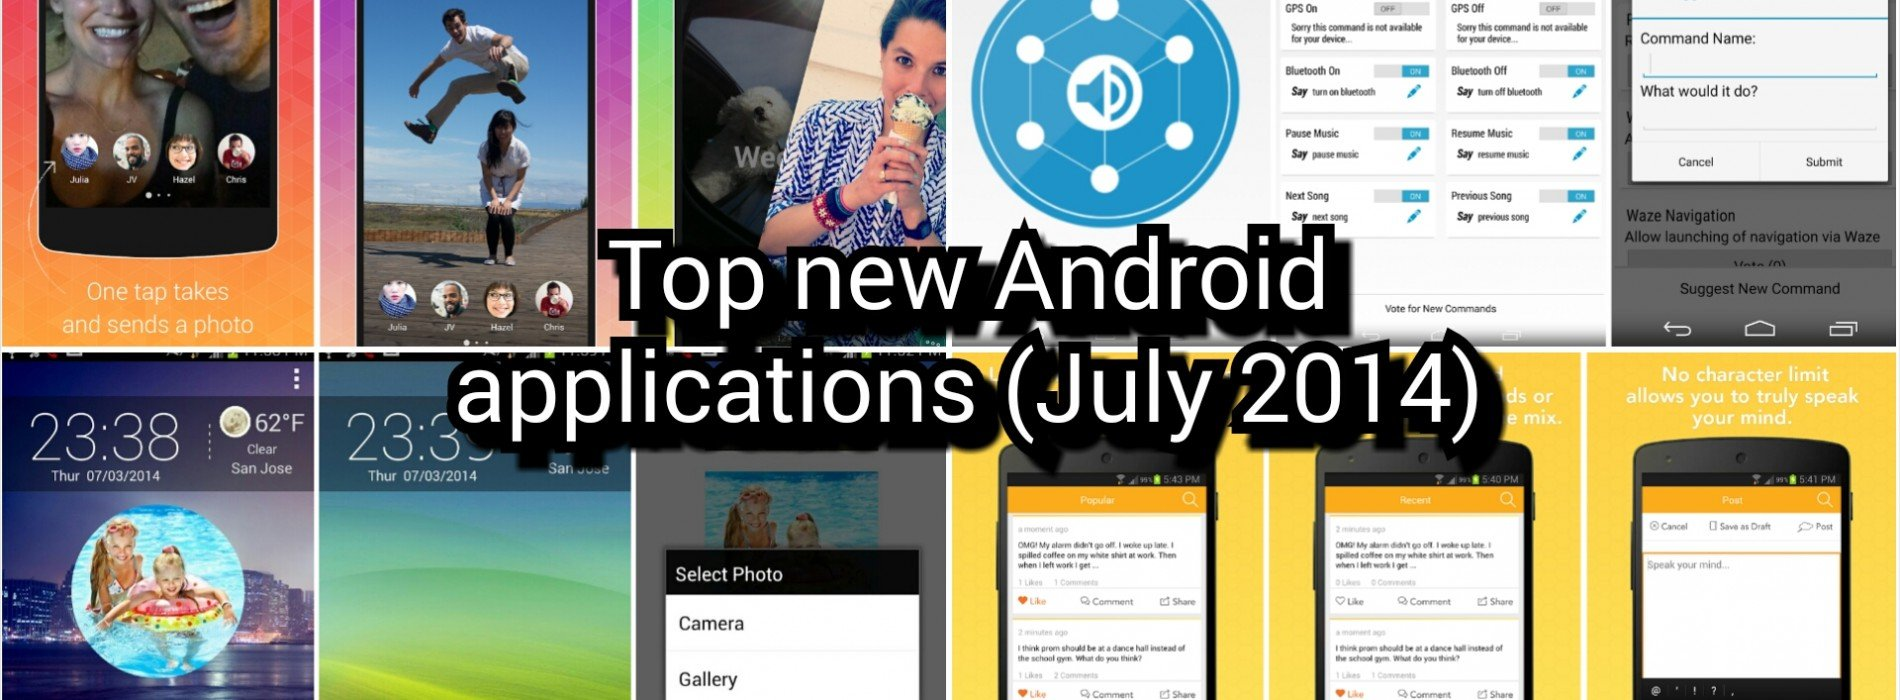 Top new Android applications (July 2014)